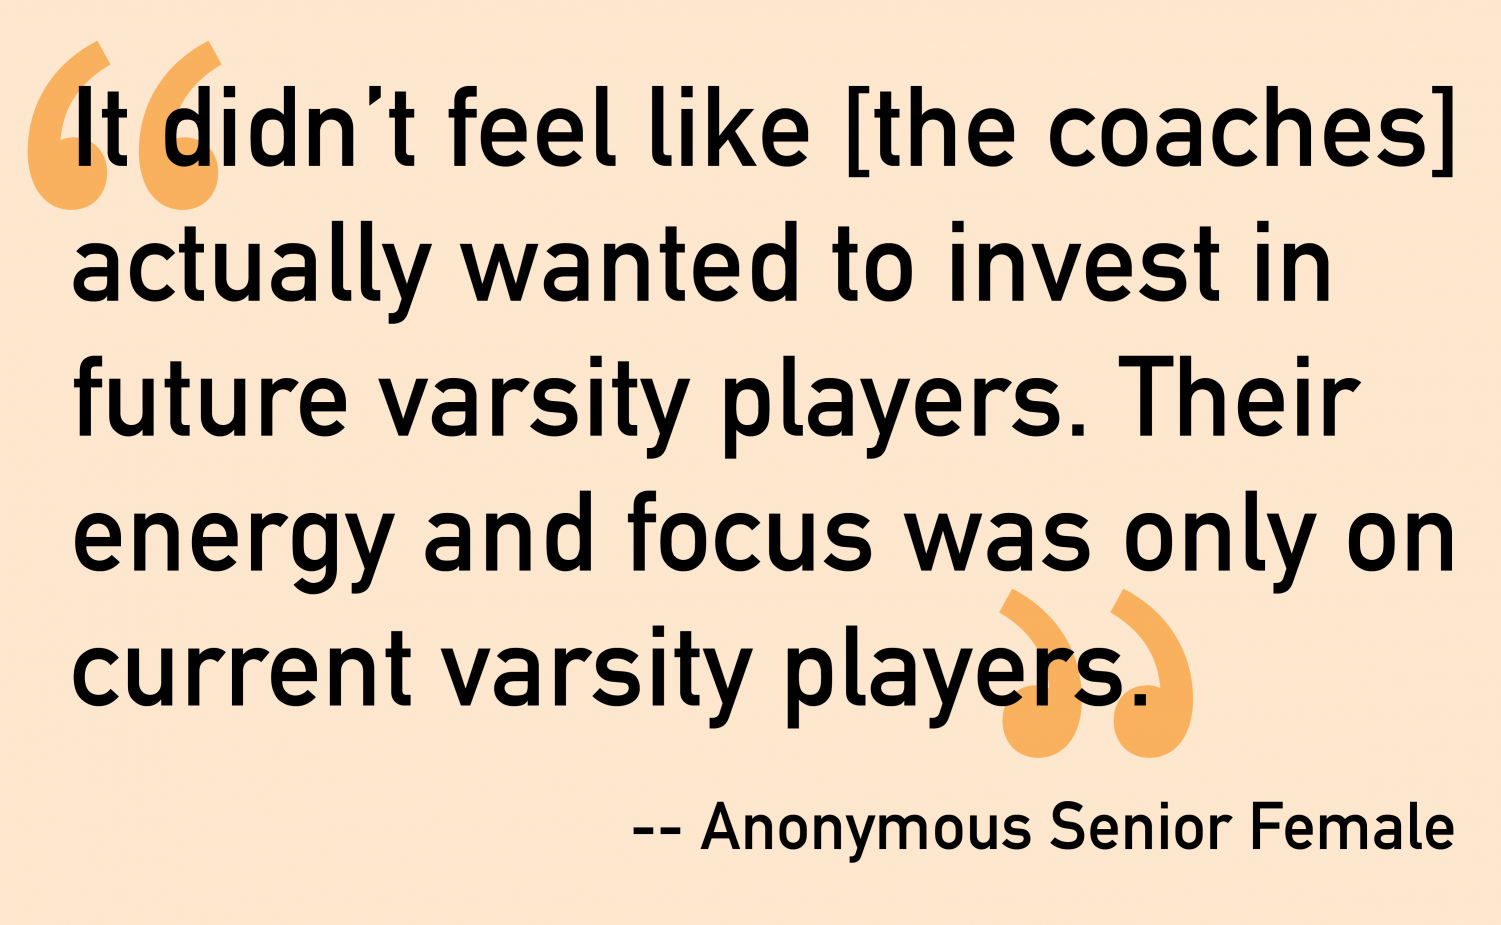 Negative coaching experiences cause some student athletes to quit